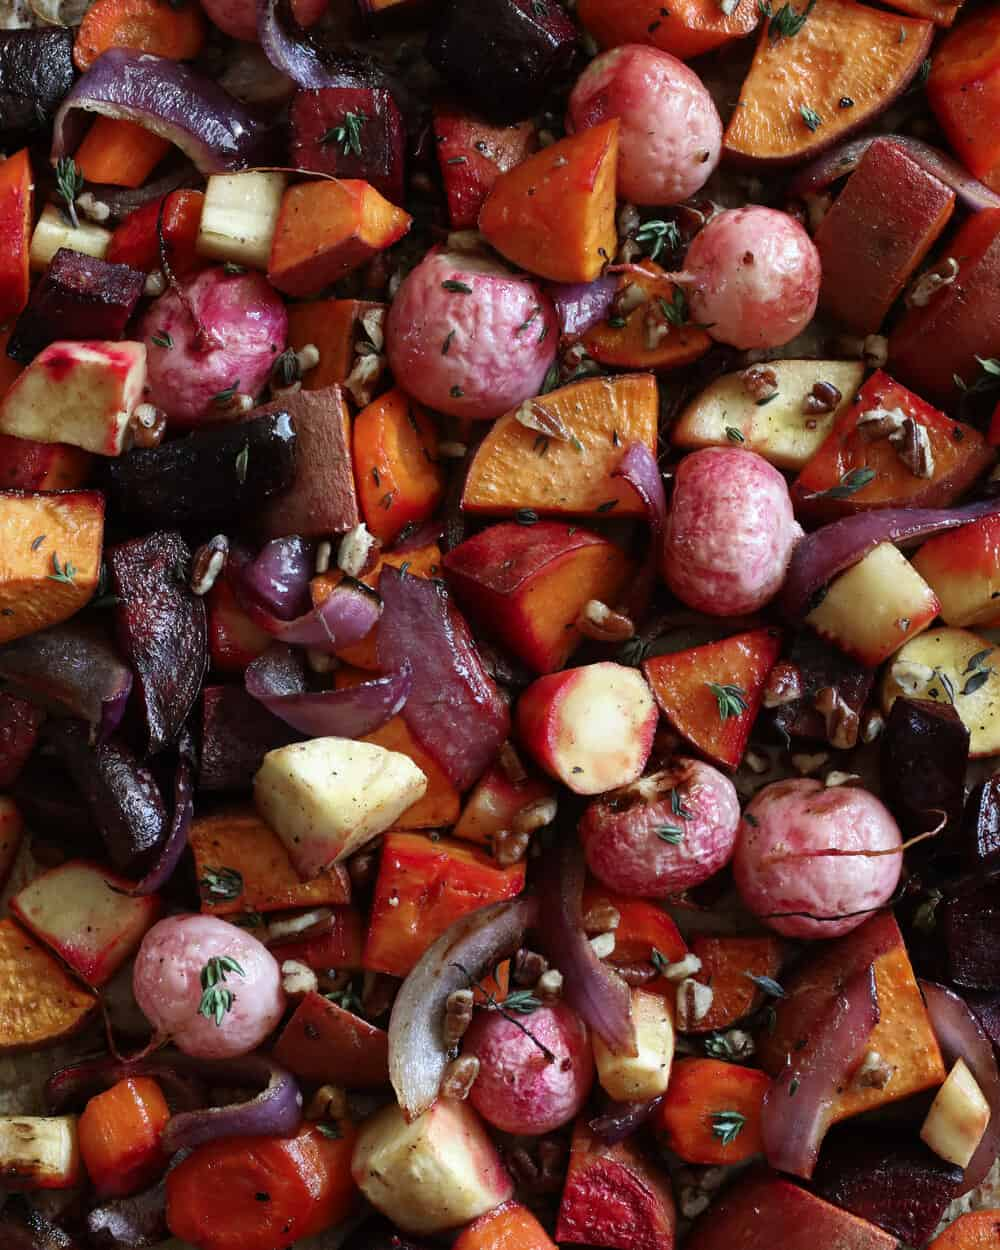 MAPLE GLAZED ROASTED ROOT VEGGIES - INGREDIENTS2 parsnips2 carrots1 large beet1 large sweet potato1 large red onion1 bunch radishes1/4 cup olive oil3 tb maple syrup1 tsp apple cider vinegar1 tsp balsamic vinegar2 cloves garlic, mashed1/4 cup chopped walnuts1 sprig fresh thyme (dry is ok too)Salt & pepper to taste